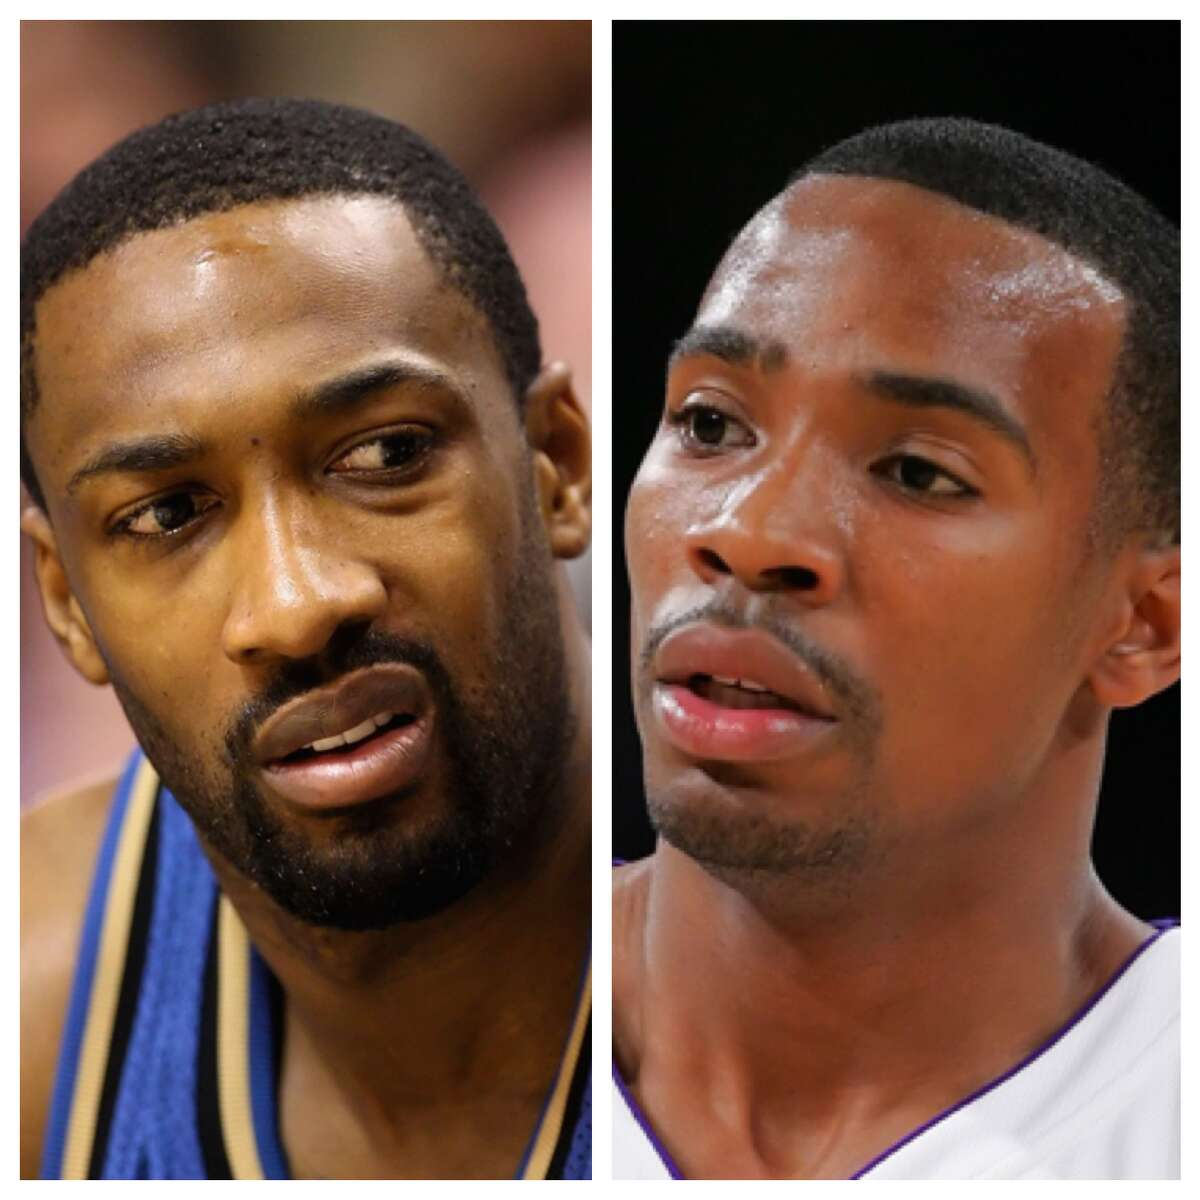 """Gilbert Arenas vs. Javaris Crittenton This involved gun play and ended up with a felony charge for Arenas, and it all started with an argument over cards, according to Arenas. After a dispute on a flight about a card game, Crittenton told Arenas he would shoot him if they were in the streets. Arenas called his bluff and said he'd give him the guns to do it. Two days later, Arenas put four empty guns on Crittenton's chair in the locker room with a note that read """"choose one."""" This infuriated Crittenton, who pulled his own gun. Cooler heads eventually prevailed, but police got involved a week later and Arenas was charged with felony gun possession. In an unrelated incident, Crittenton currently is serving 23 years in prison for his role in a drive-by shooting."""